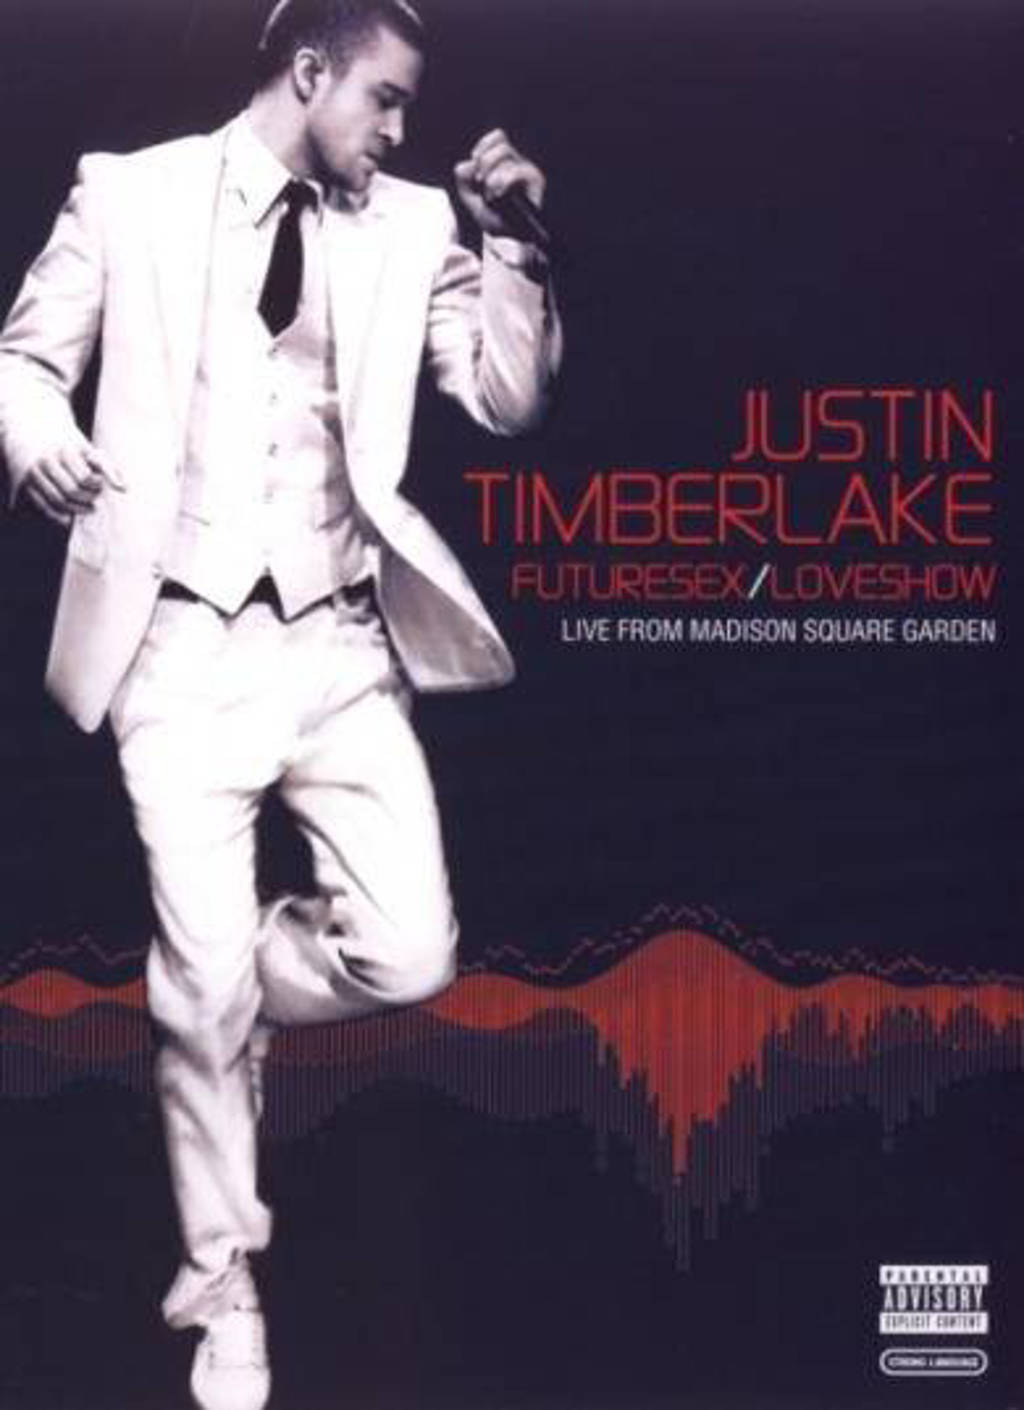 Justin Timberlake - futuresex/loveshow live (DVD)